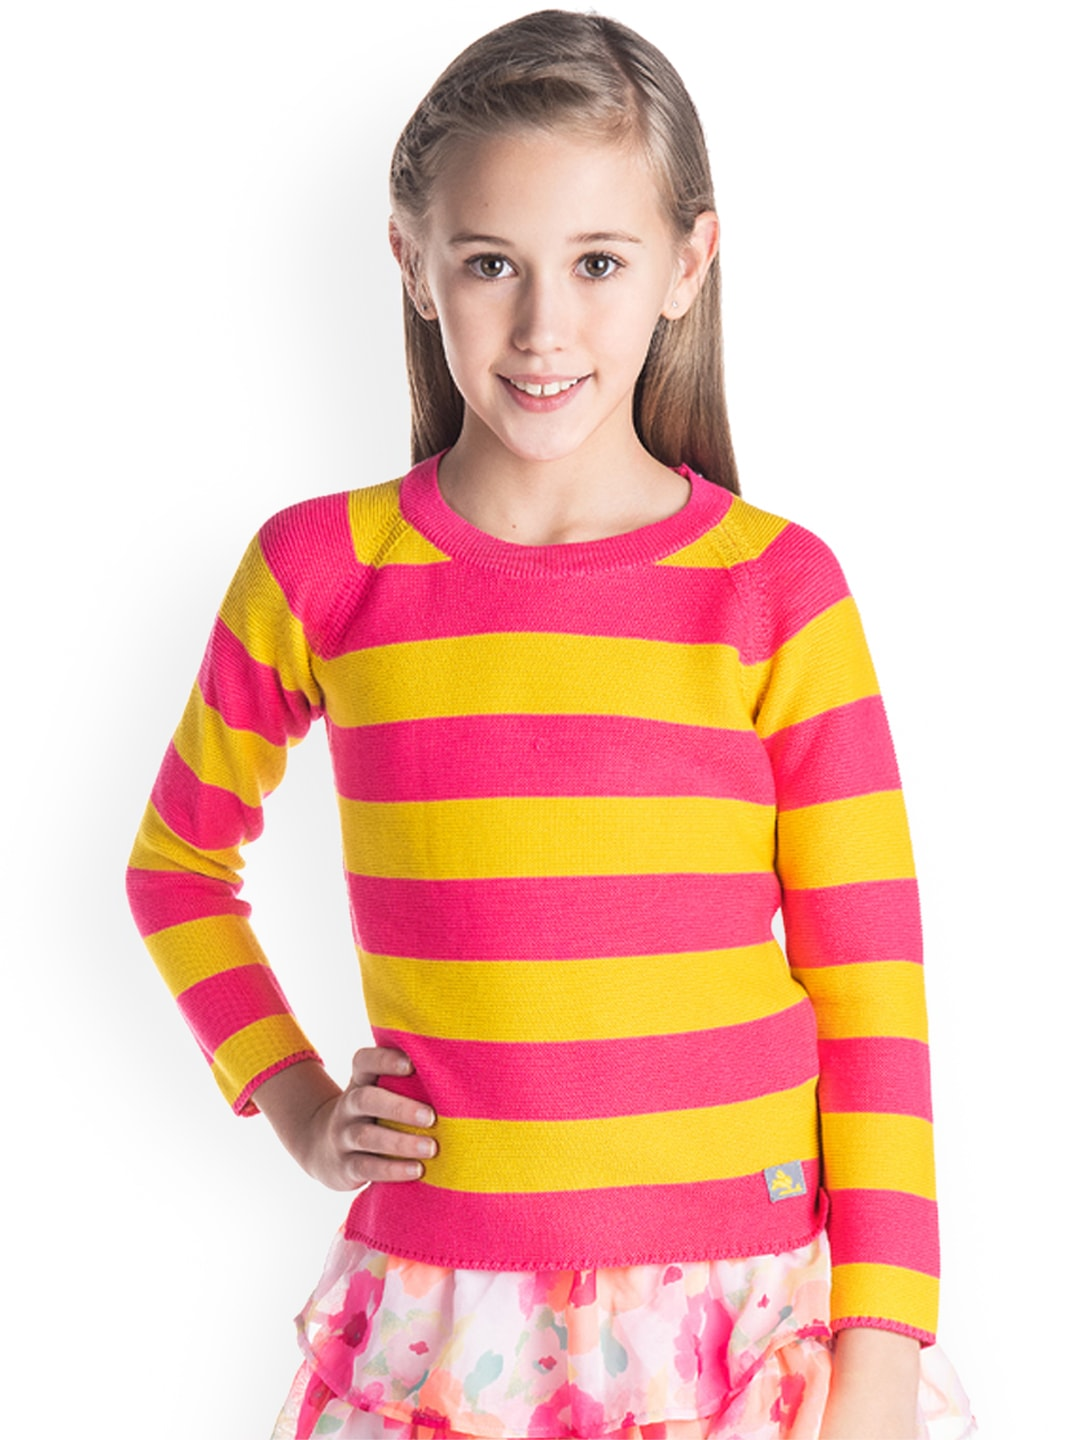 bd52b8eaf18 Girl s Sweaters - Buy Sweaters for Girls Online in India